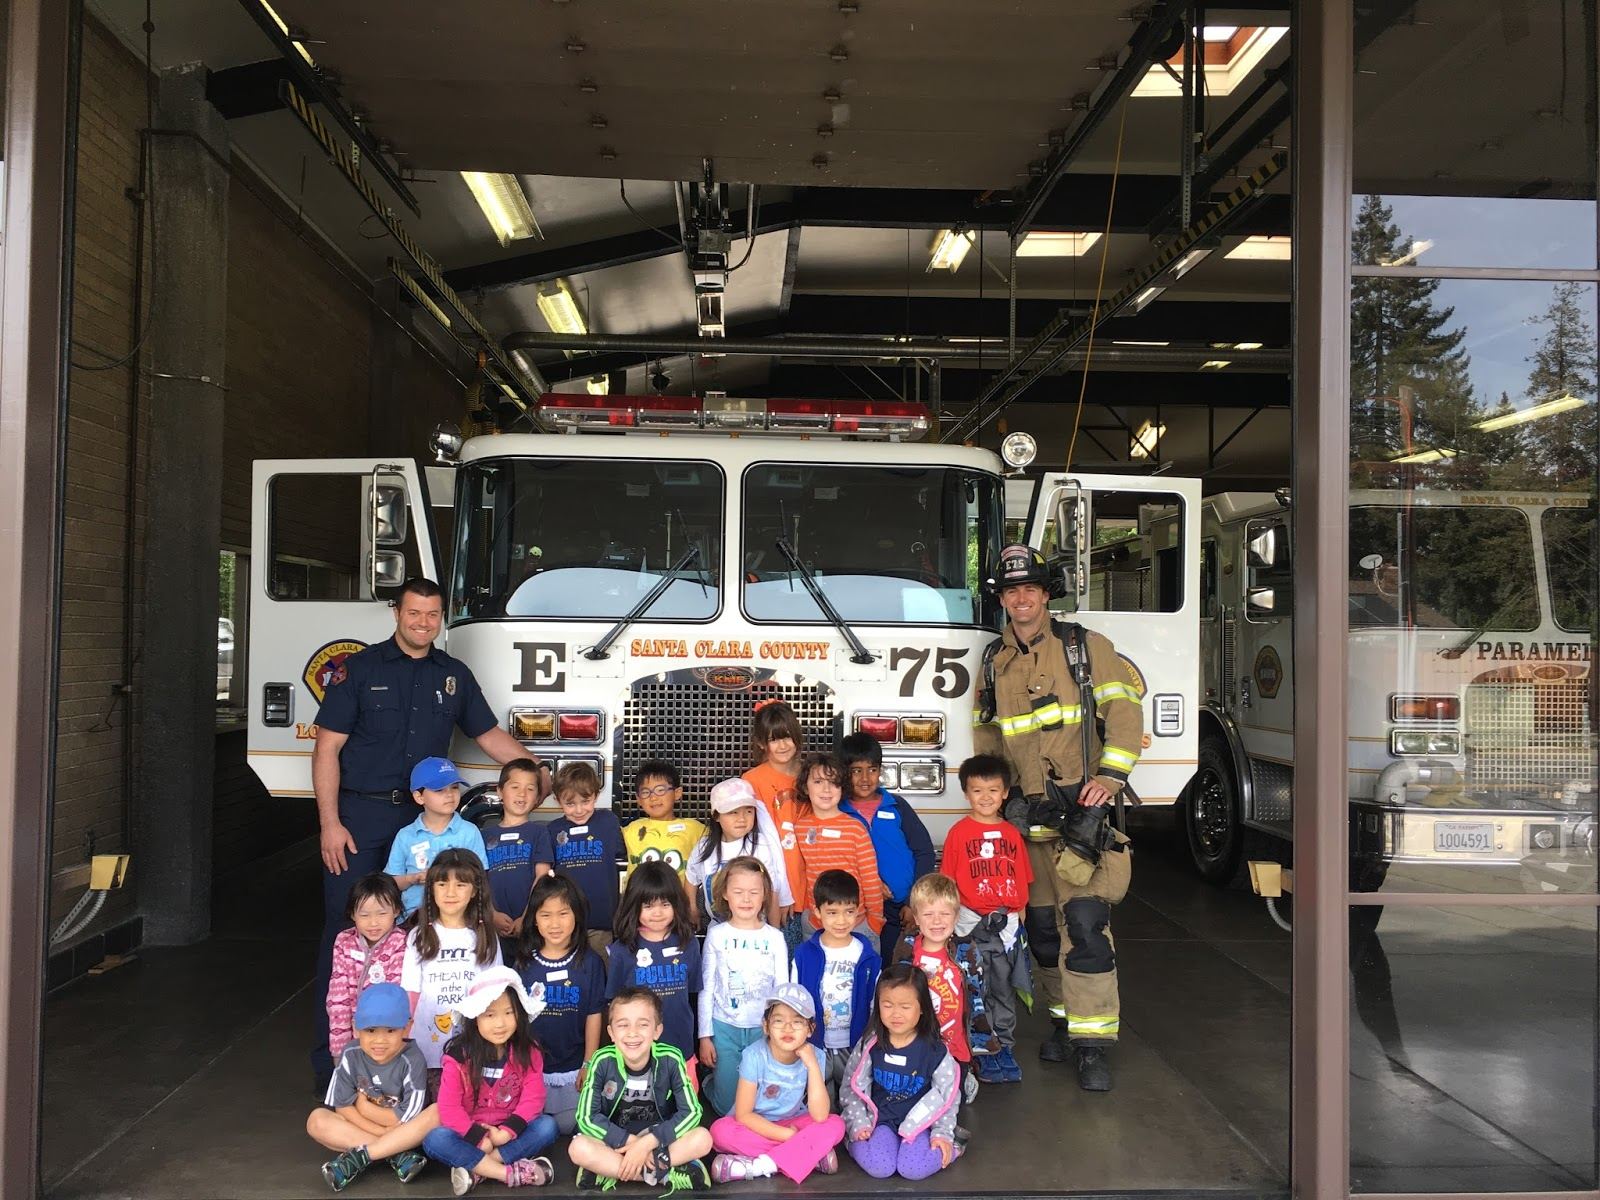 017 K Students Firestation Visit To Fire Station Essay Unusual Full